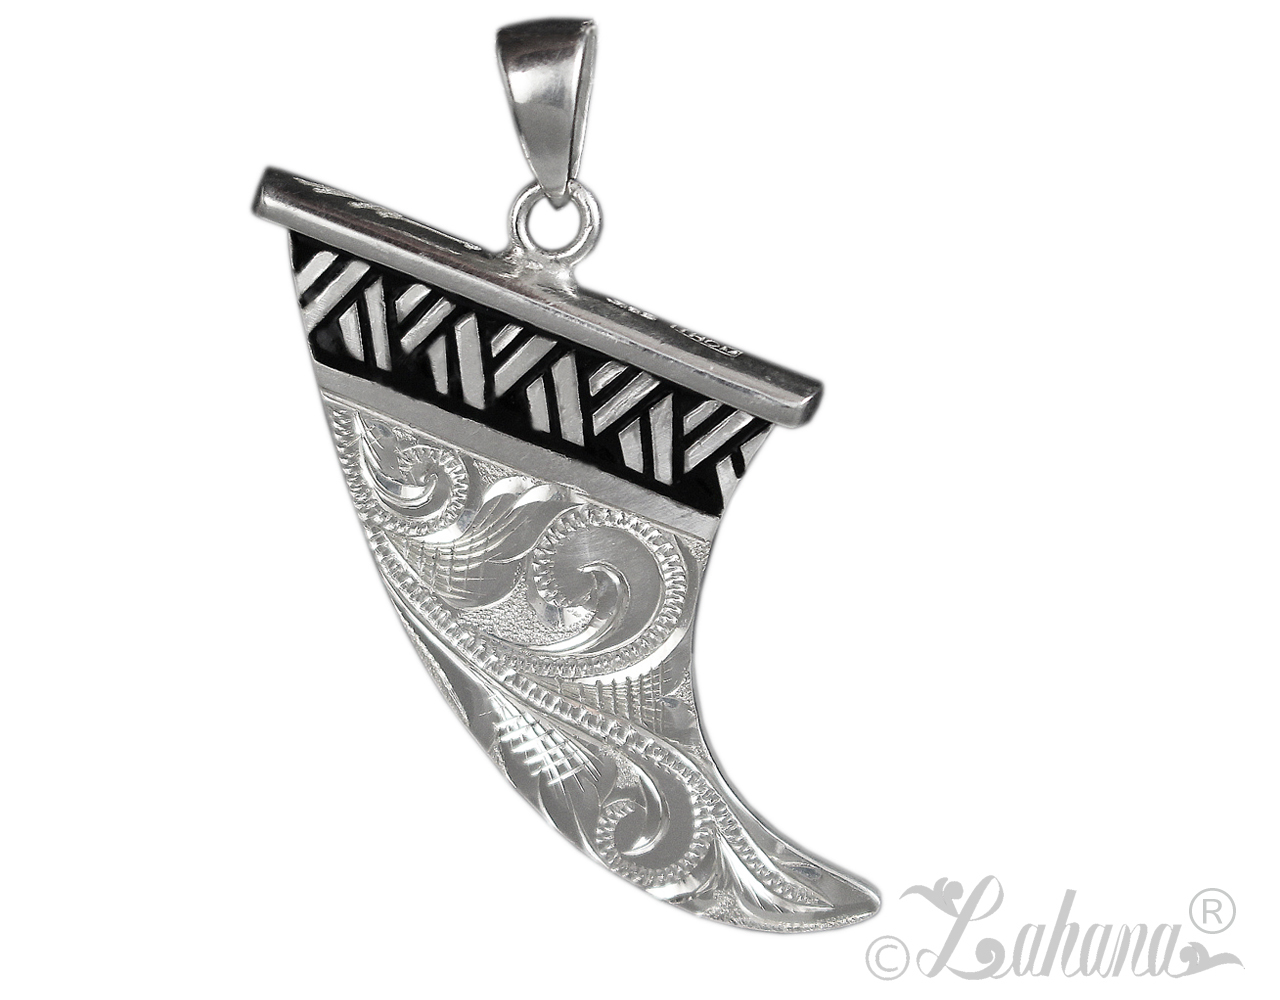 fin-skeg-pendant-with-tapa-intricate-scroll-wm-41284.1492276614.jpg